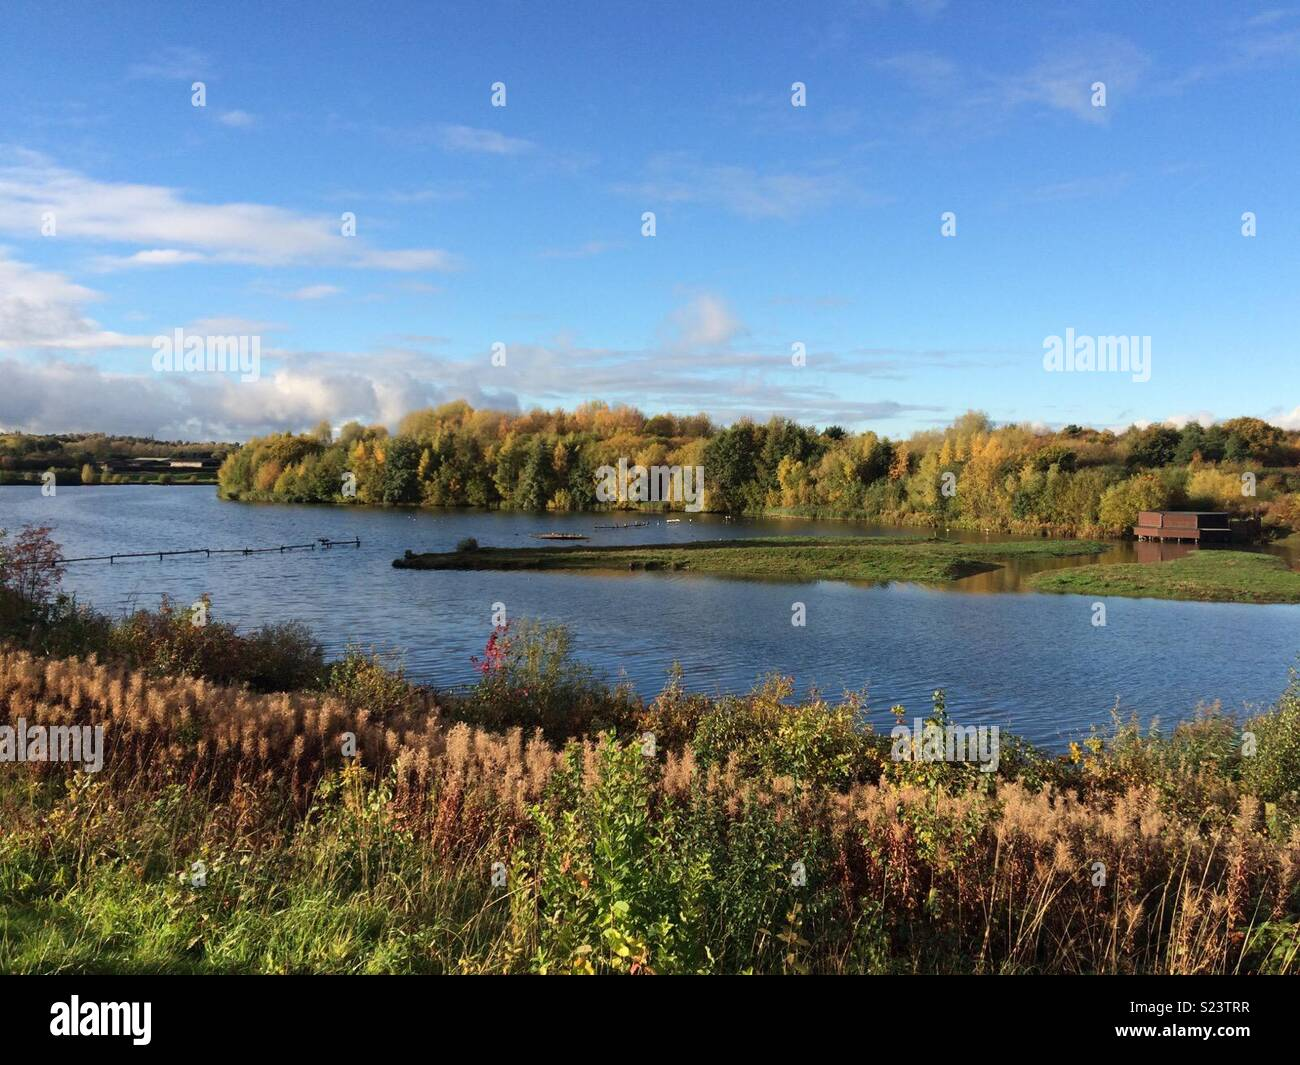 Taken at Sandwell Valley Nature Reserve in Autumn 2016 - Stock Image